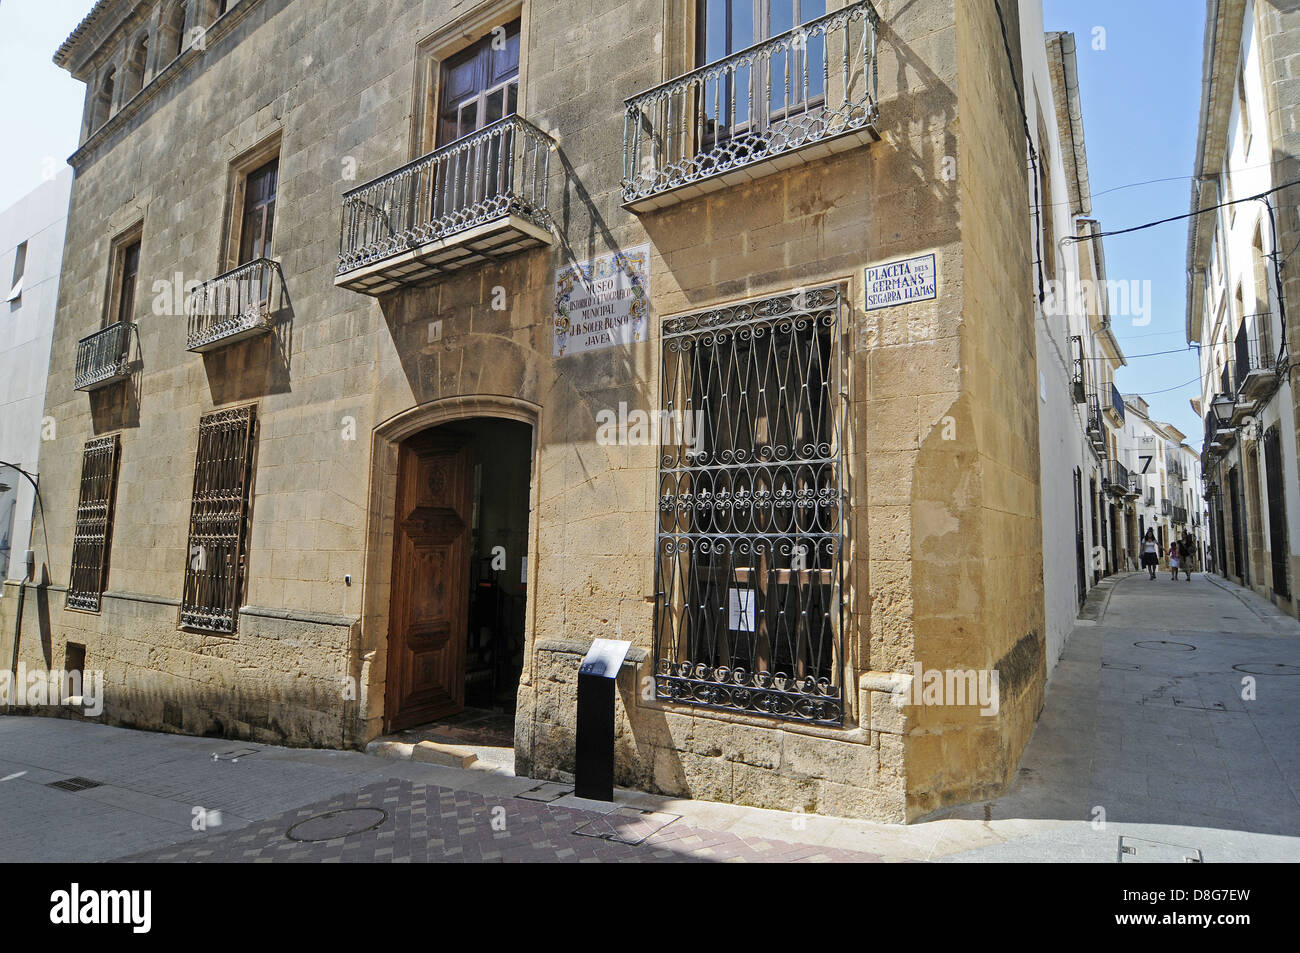 Archaeological and Ethnographic Museum - Stock Image